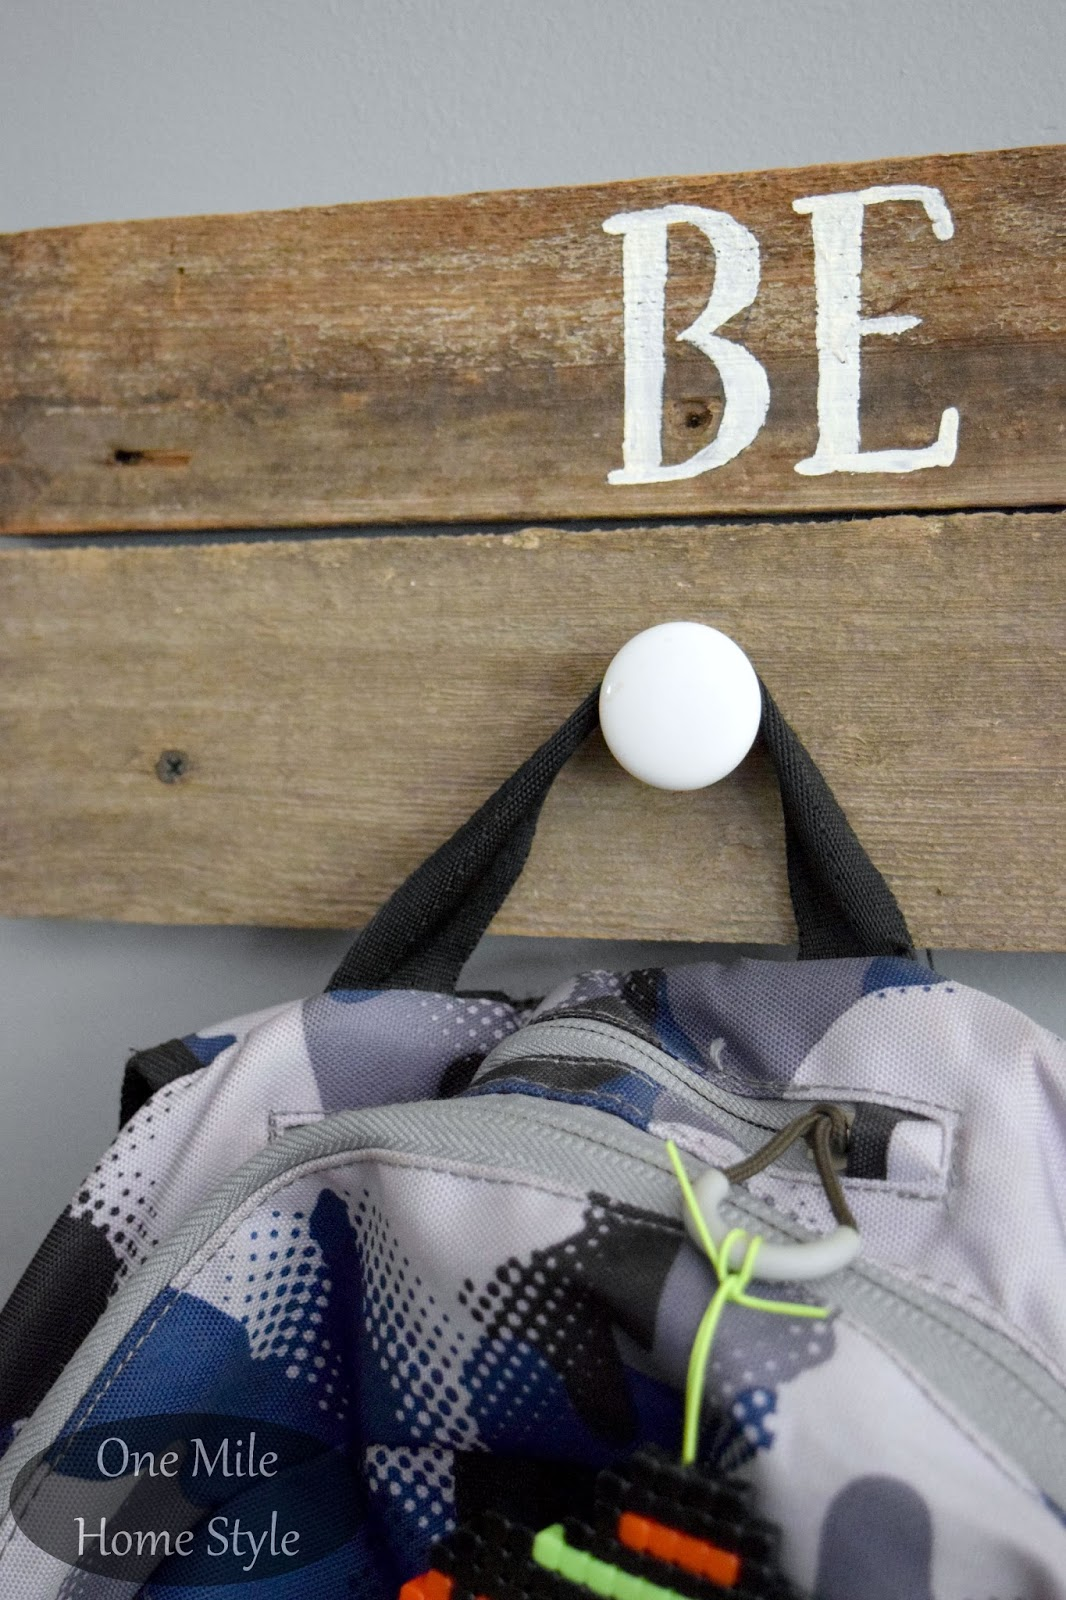 DIY Reclaimed Wood Backpack Hangers From Barnwood And Glass Knobs   One  Mile Home Style